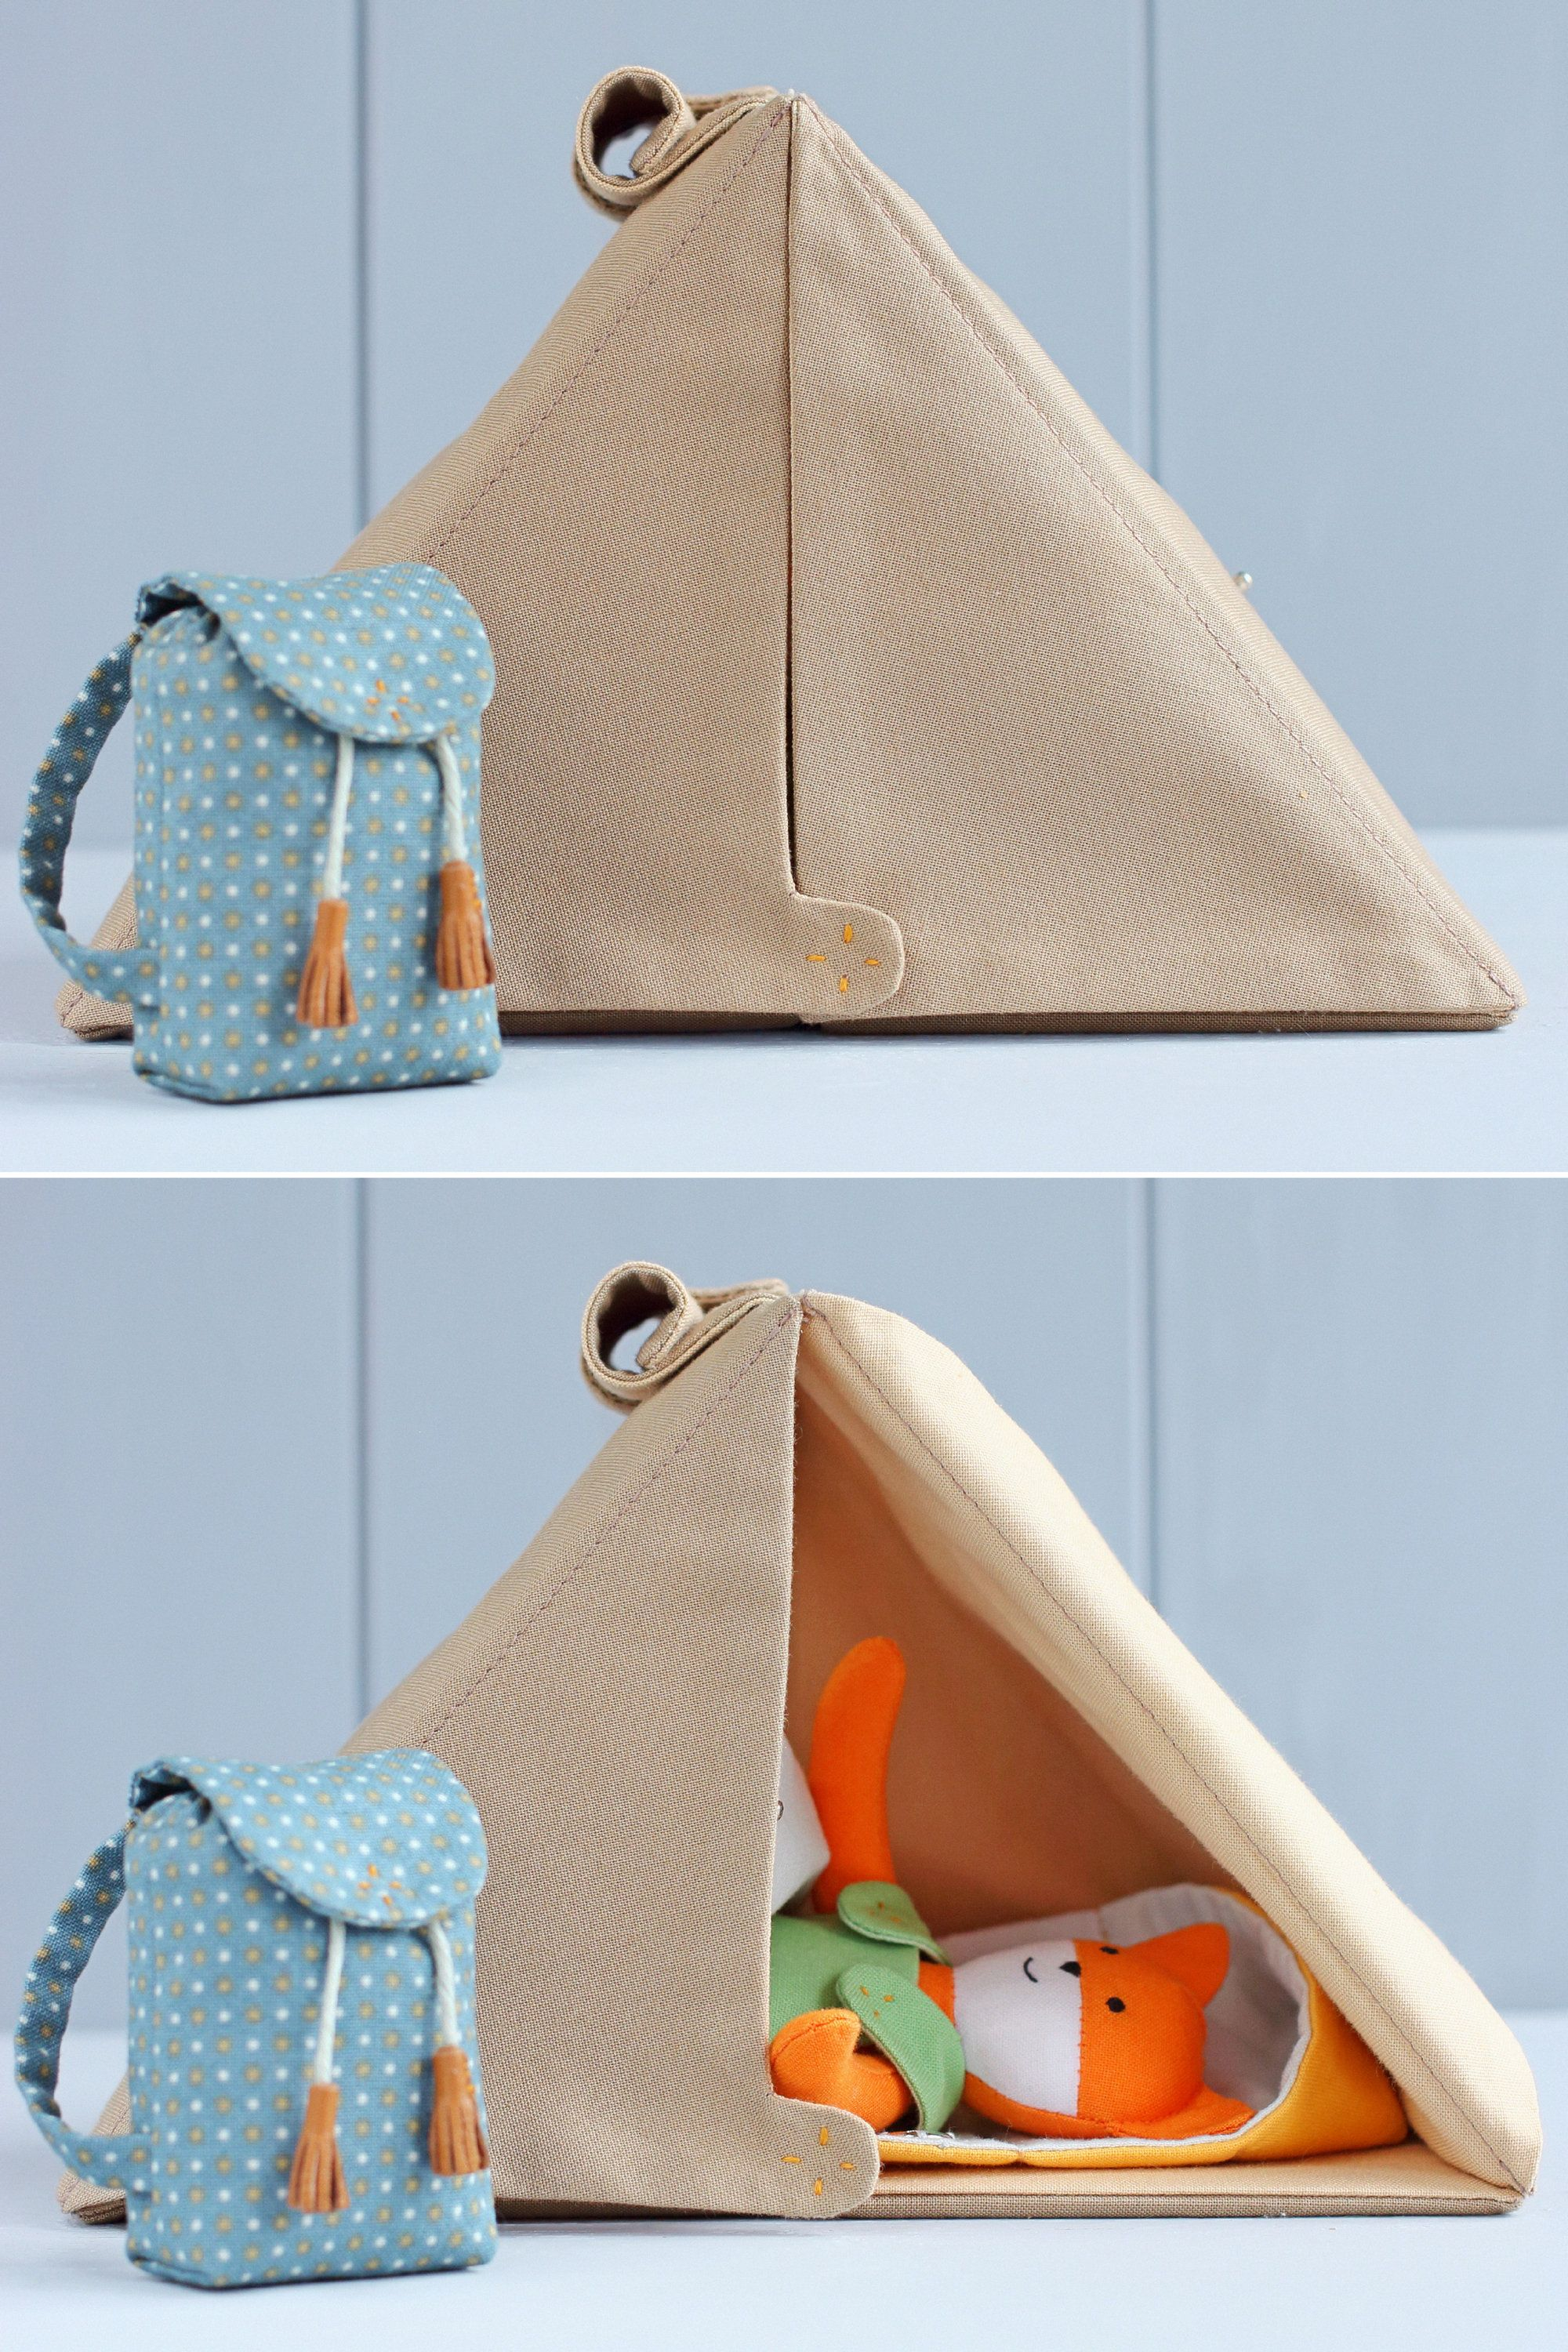 2 PDF: Mini Fox + Camping Set for Mini Doll (Camping Tent, Backpack, Sleeping Bag) Sewing Pattern — DIY Animal Stuffed Doll, Play Set